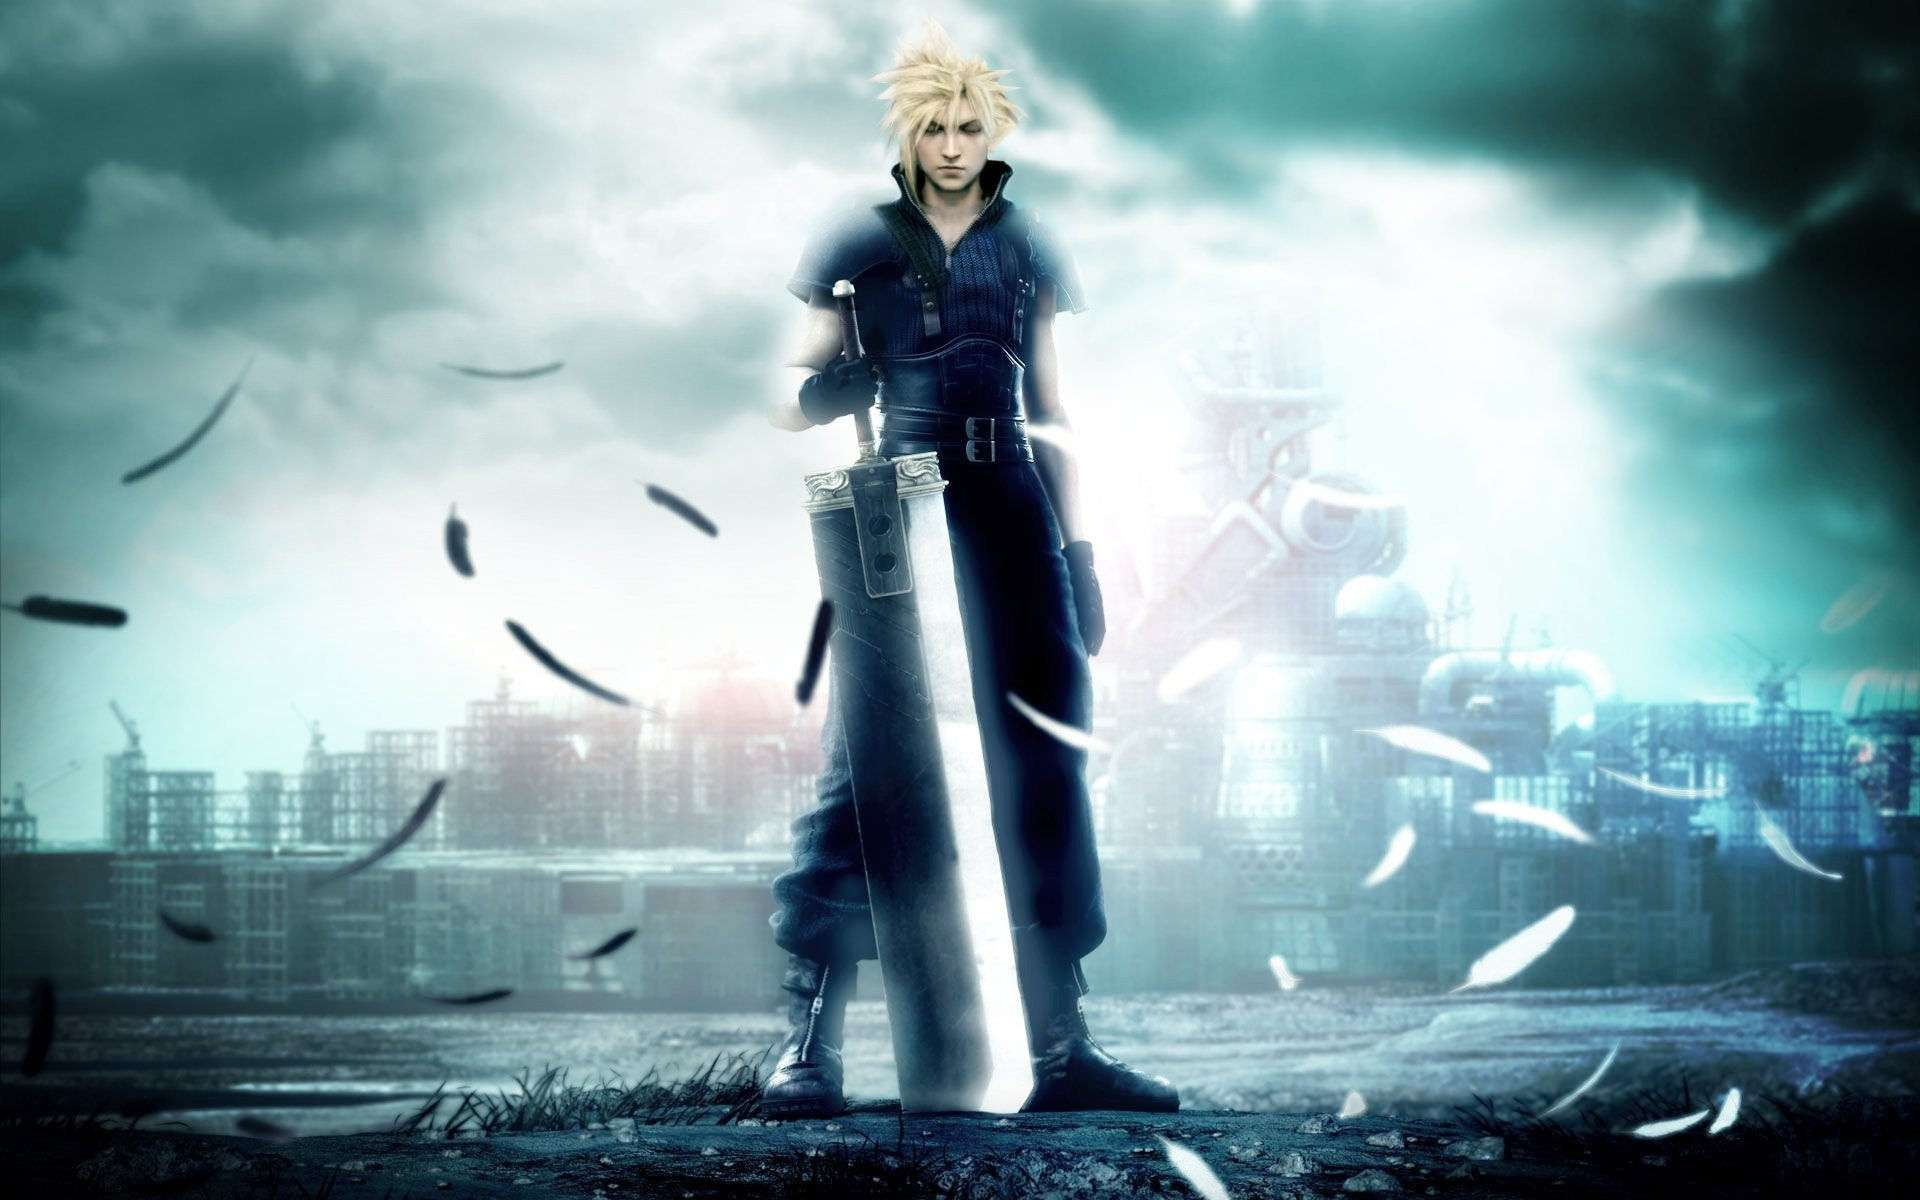 Final Fantasy Video Game Wallpaper 036